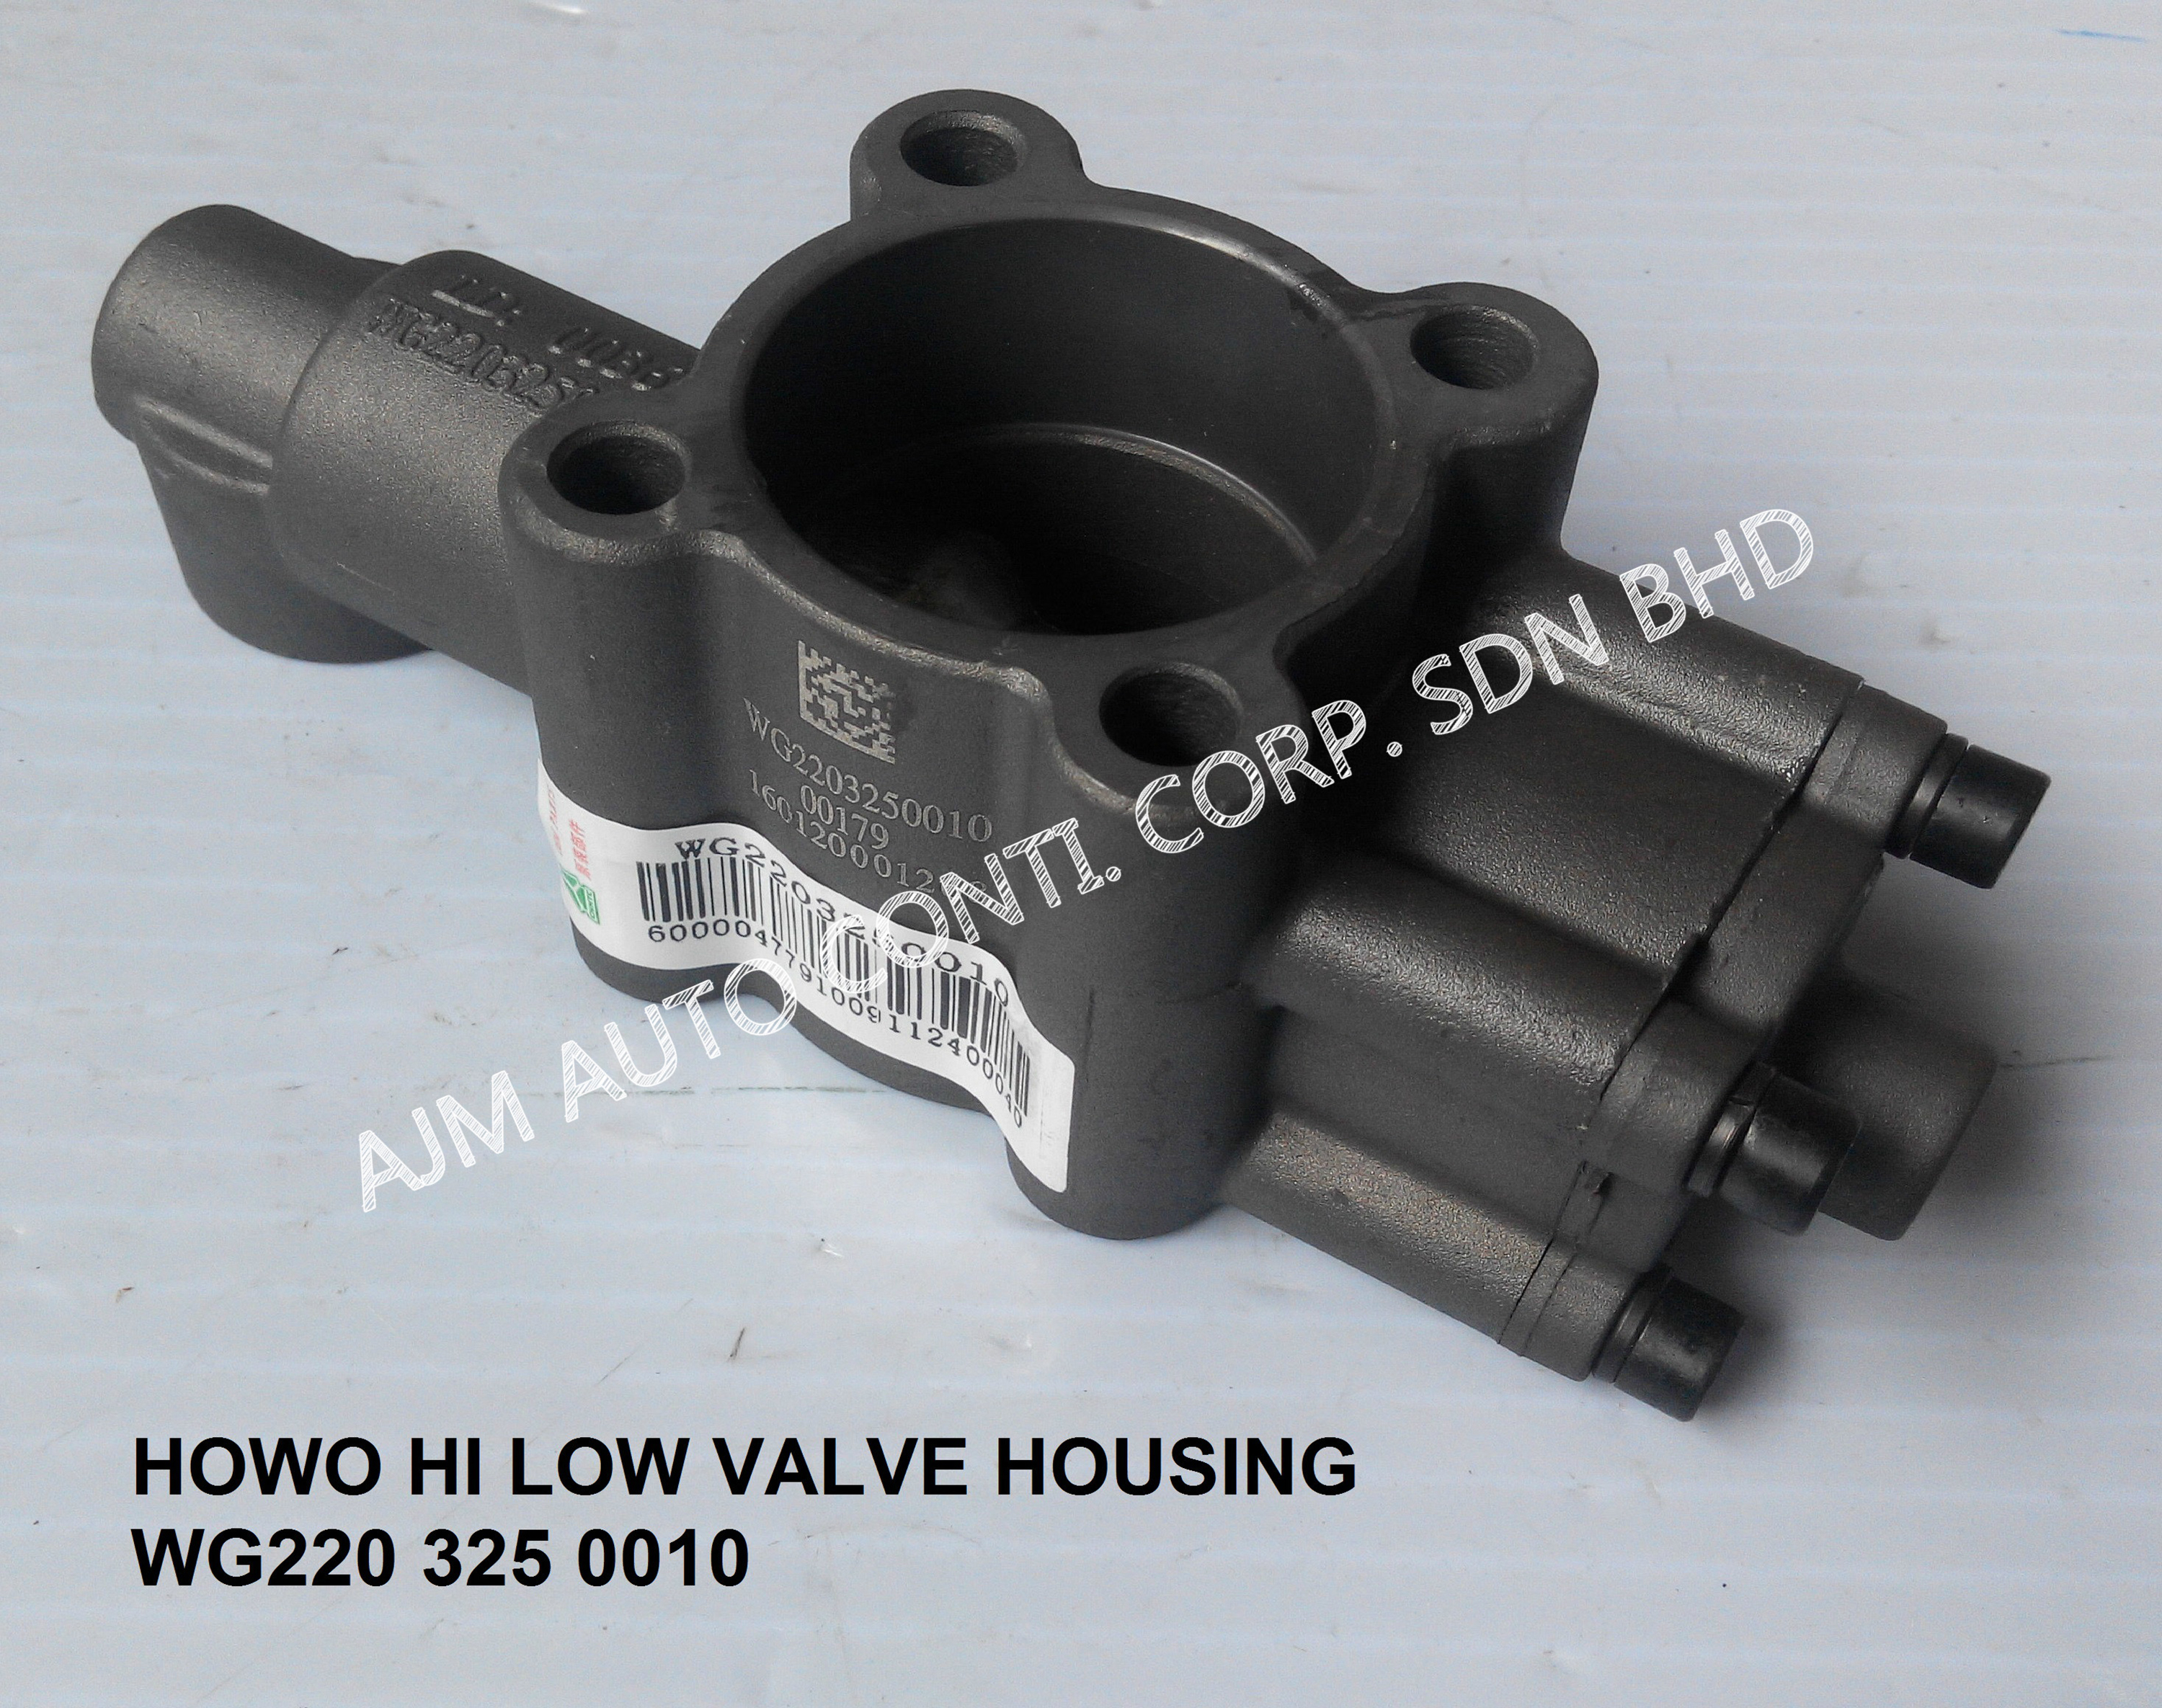 SINOTRUCK_HOWO_HI_LOW_VALVE_HOUSING-WG2203250010